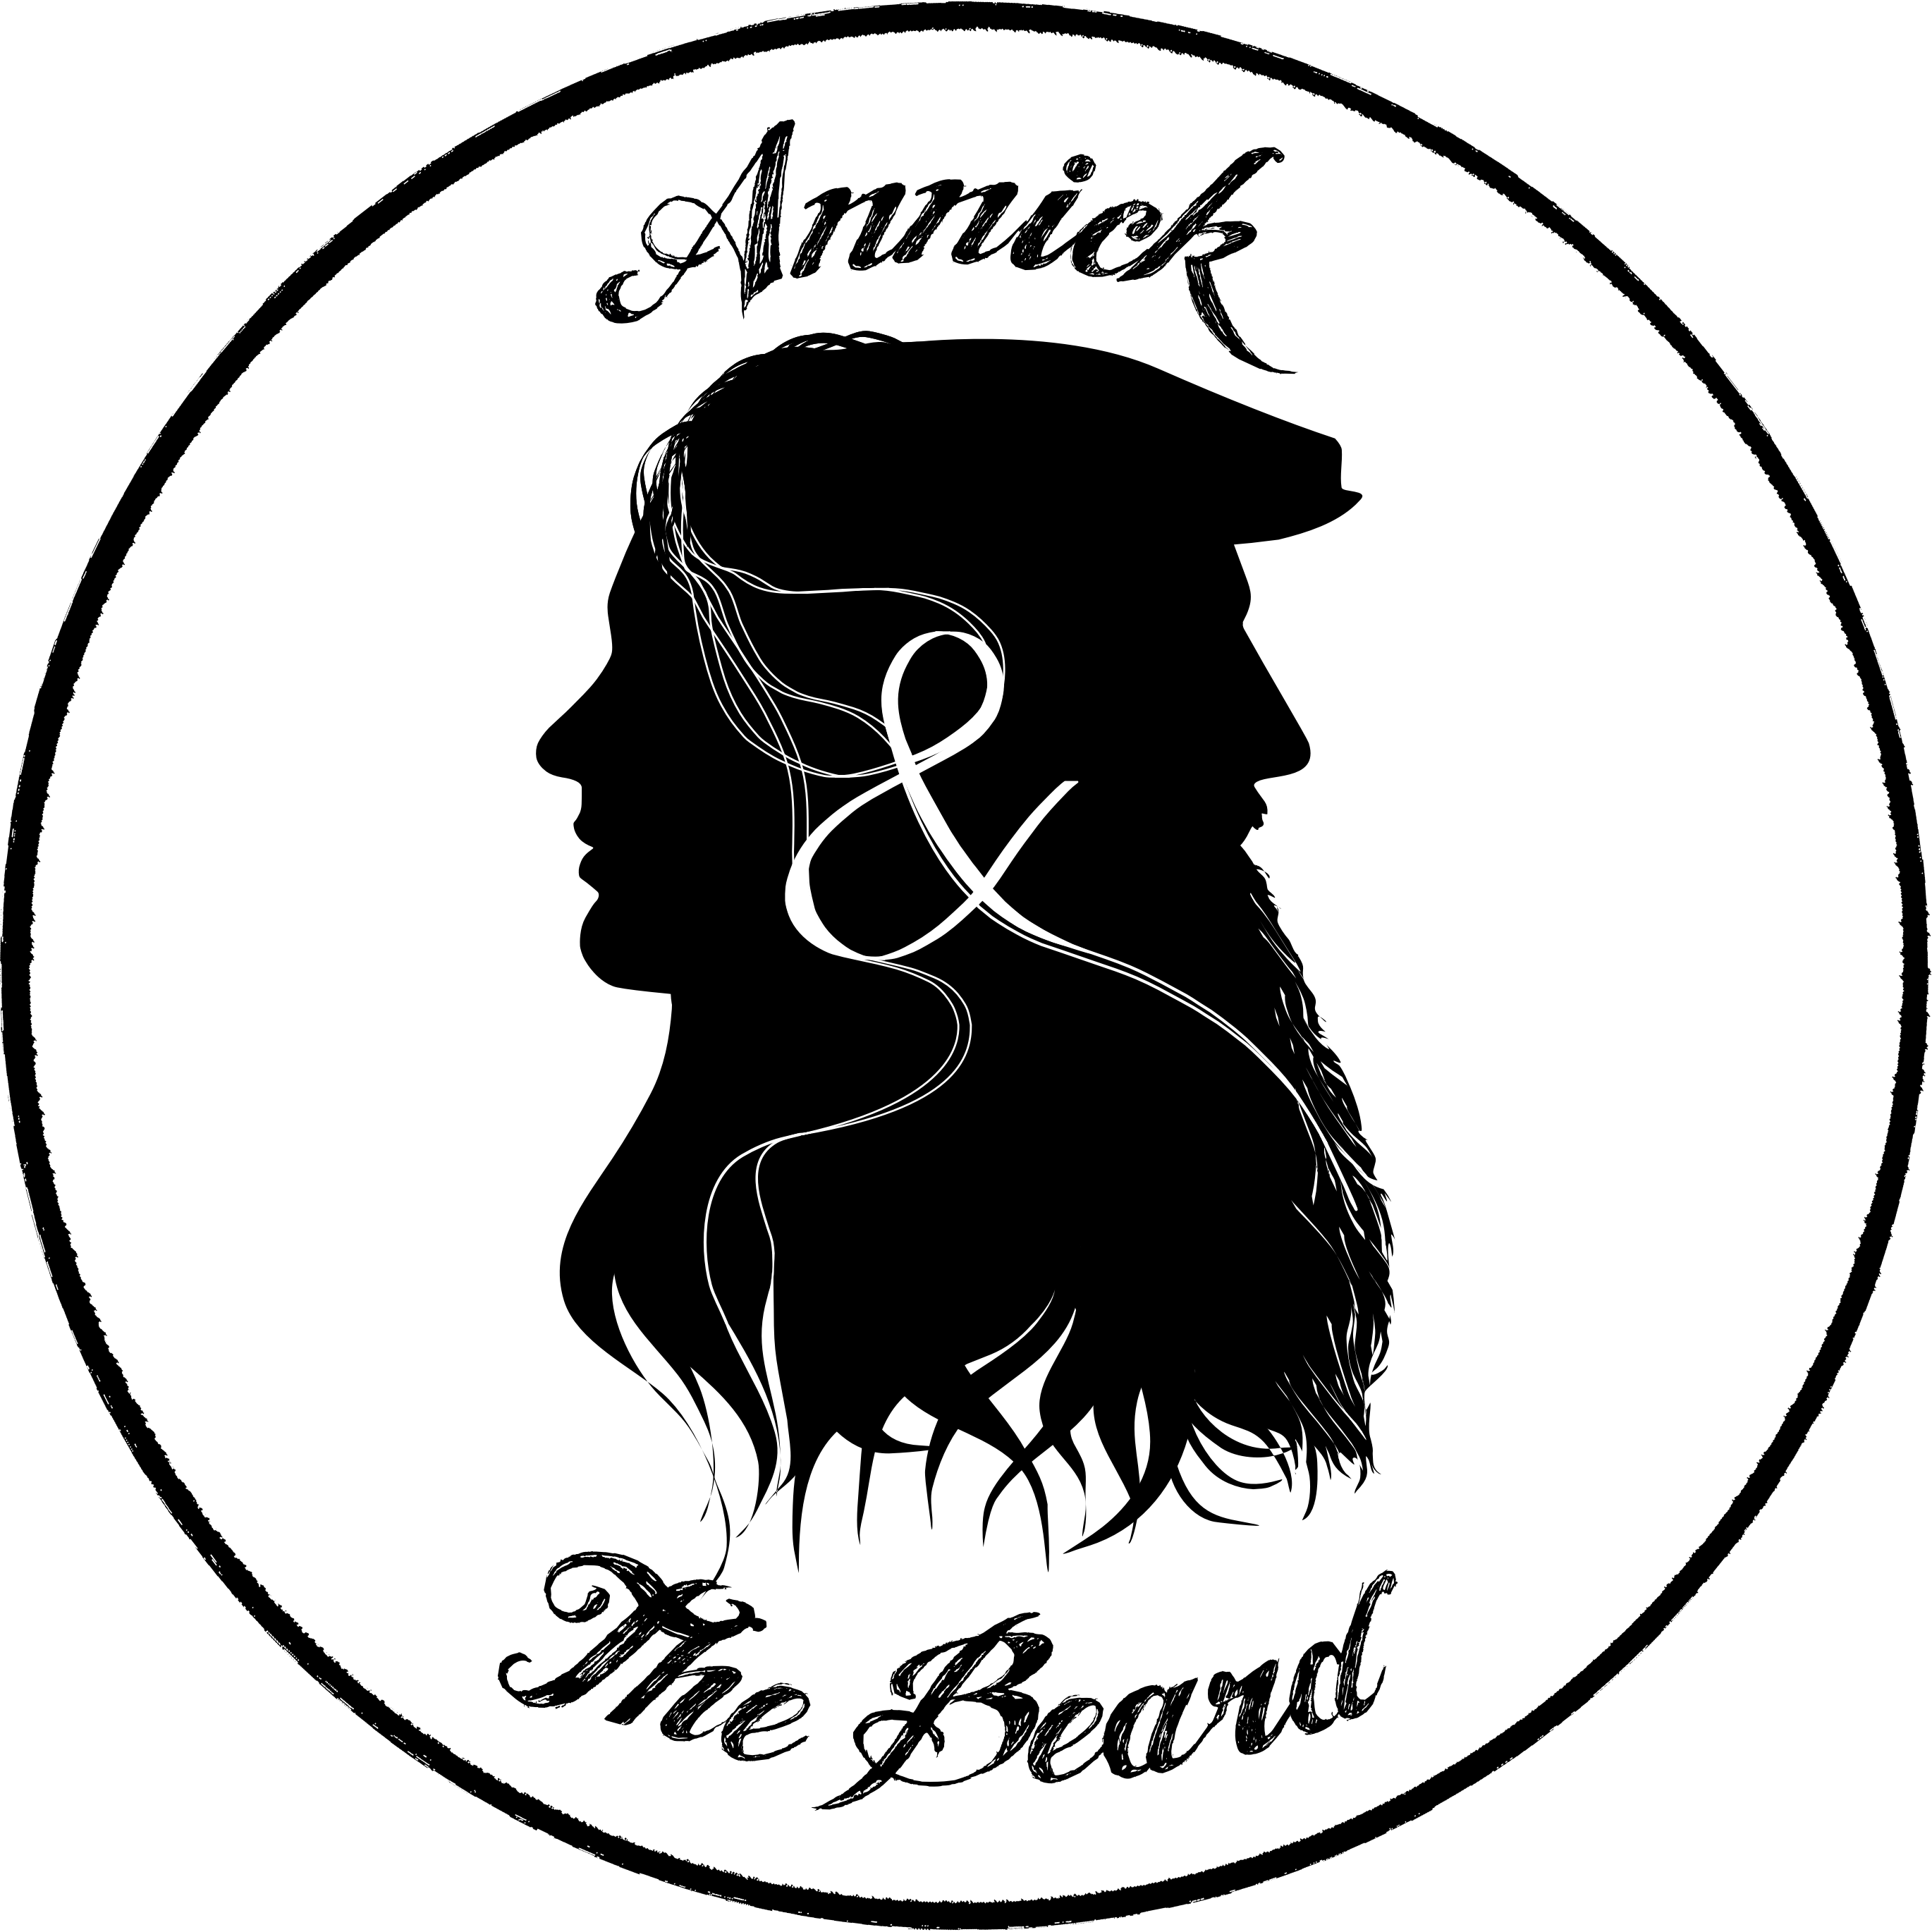 Annick & The Beard